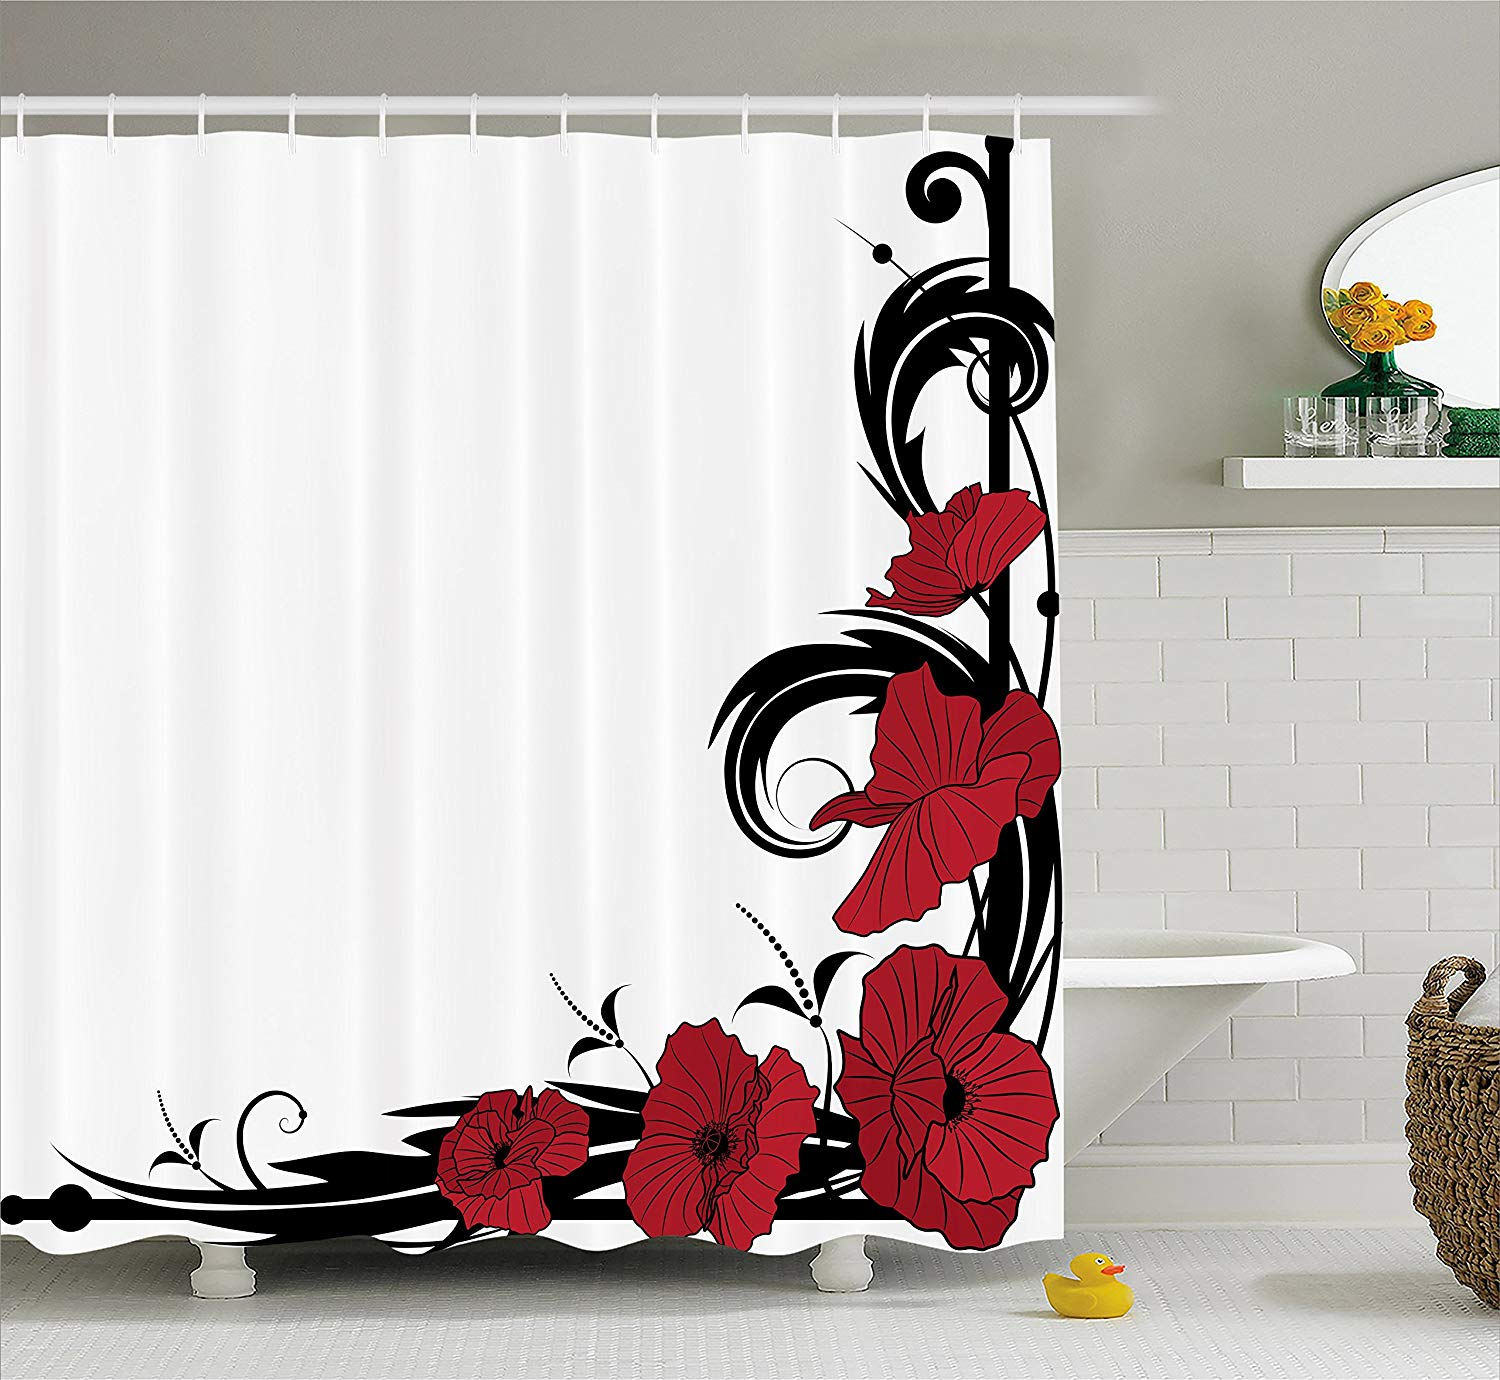 Ambesonne Art Nouveau Shower Curtain, Poppy Bouquet Branches Romantic Pastoral Idyllic Meadow Blossom Vintage, Cloth Fabric Bathroom Decor Set with Hooks, 70 Inches, Black Ruby White